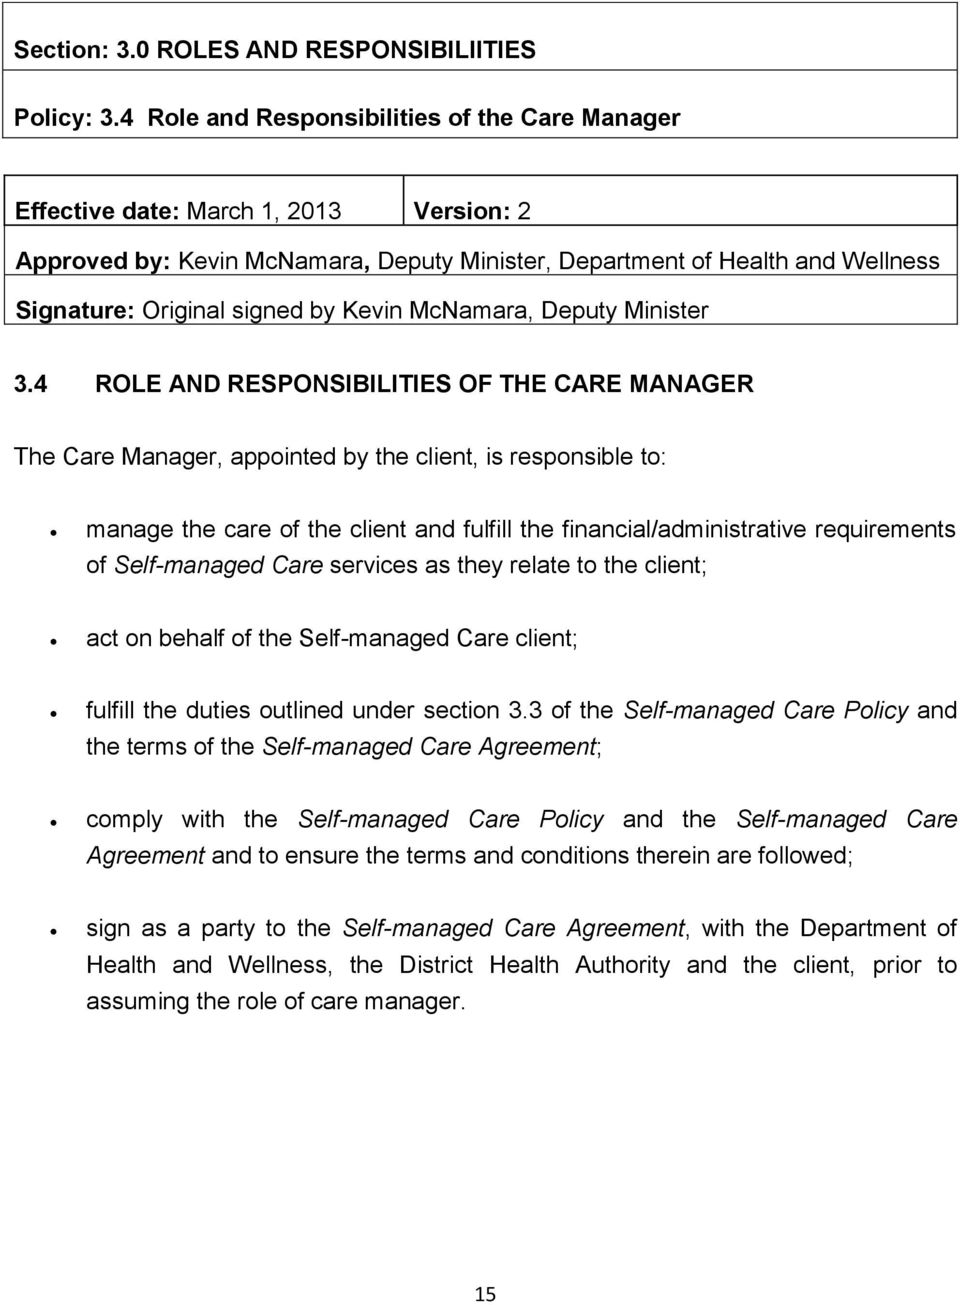 Self-managed Care services as they relate to the client; act on behalf of the Self-managed Care client; fulfill the duties outlined under section 3.